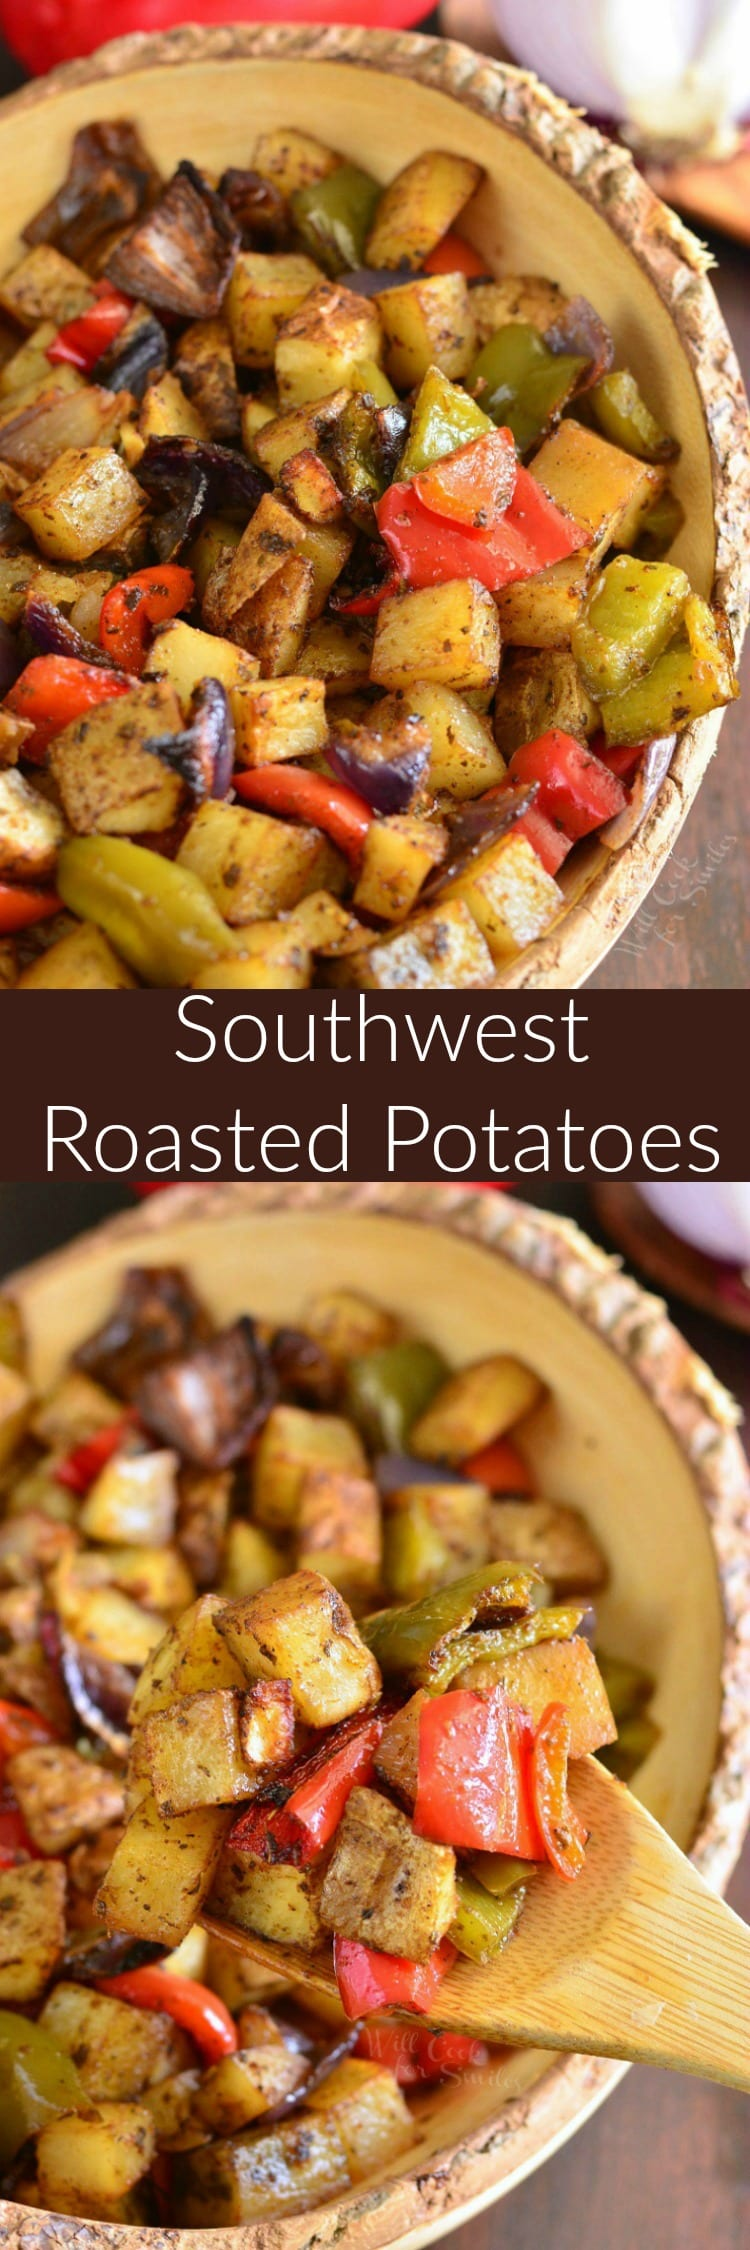 collage photo top photo is Southwest Roasted Potatoes in a yellow bowl bottom with a wooden spoon scooping some out